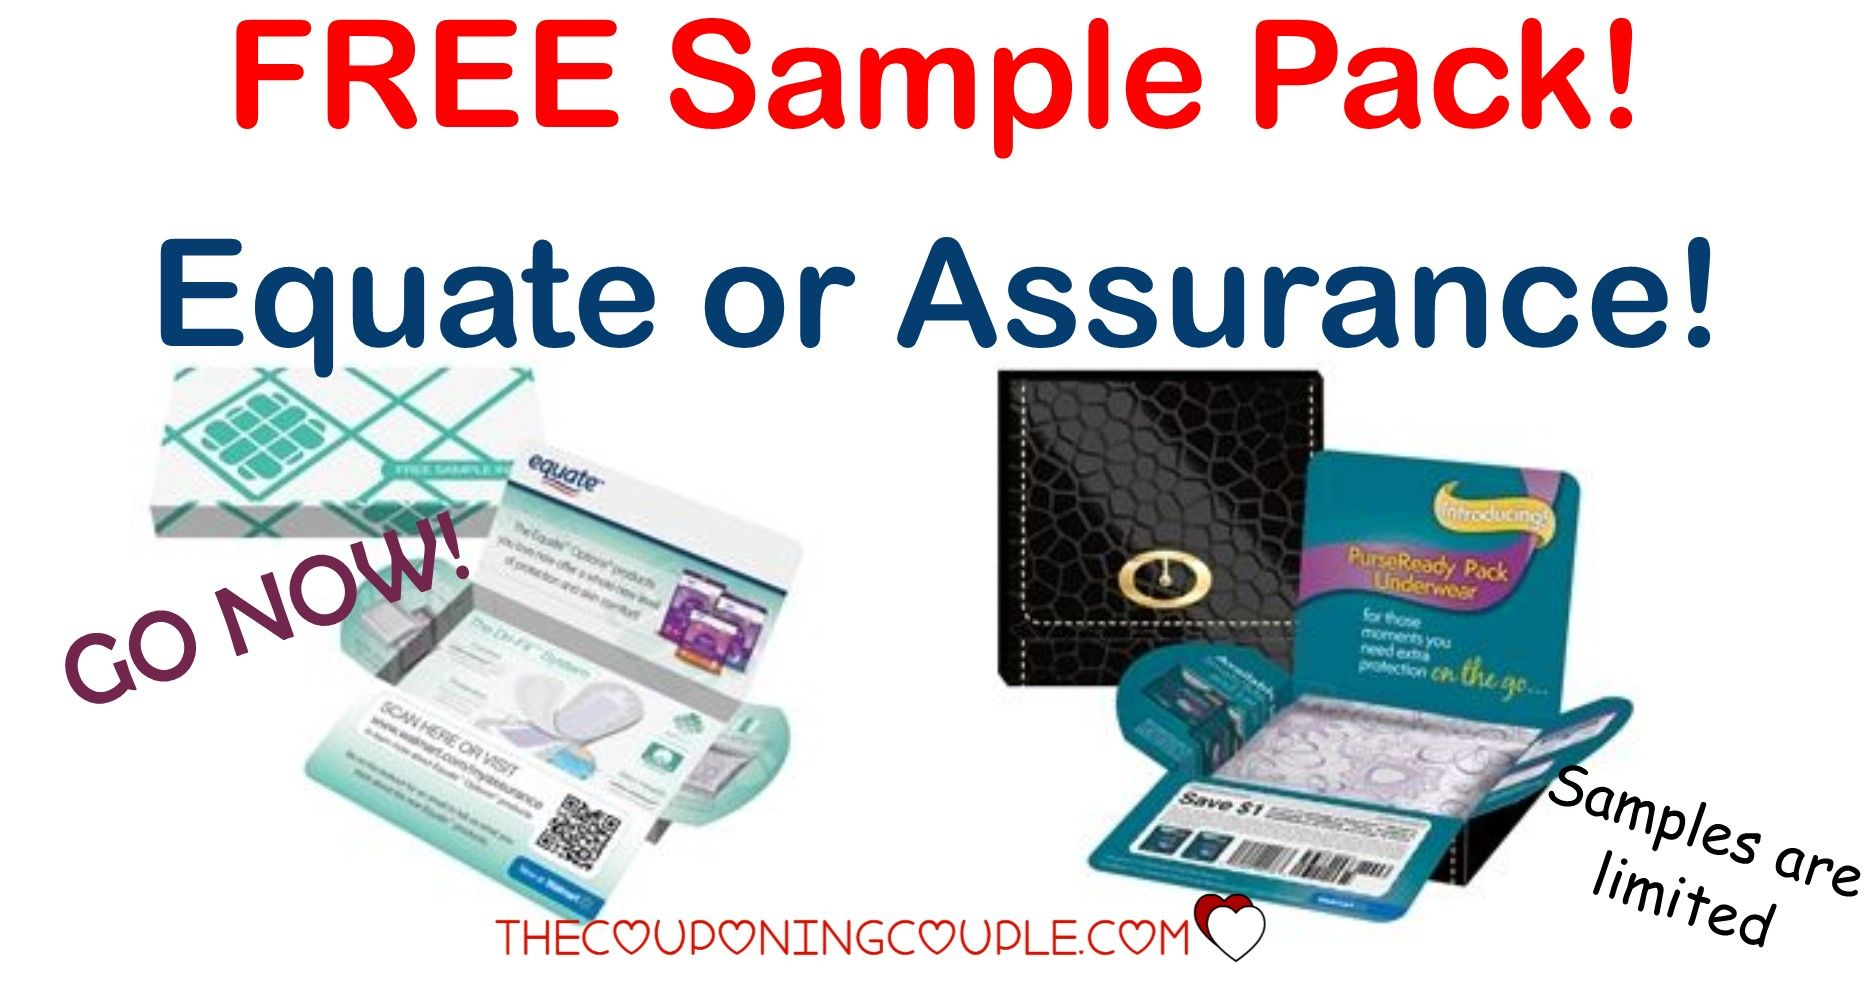 FREE SAMPLE!! GO NOW! Request a FREE Equate Feminine Products or Assurance Products Sample Pack! Supplies are limited so go NOW!  Click the link below to get all of the details ► http://www.thecouponingcouple.com/free-equate-feminine-products-sample-pack/ #Coupons #Couponing #CouponCommunity  Visit us at http://www.thecouponingcouple.com for more great posts!